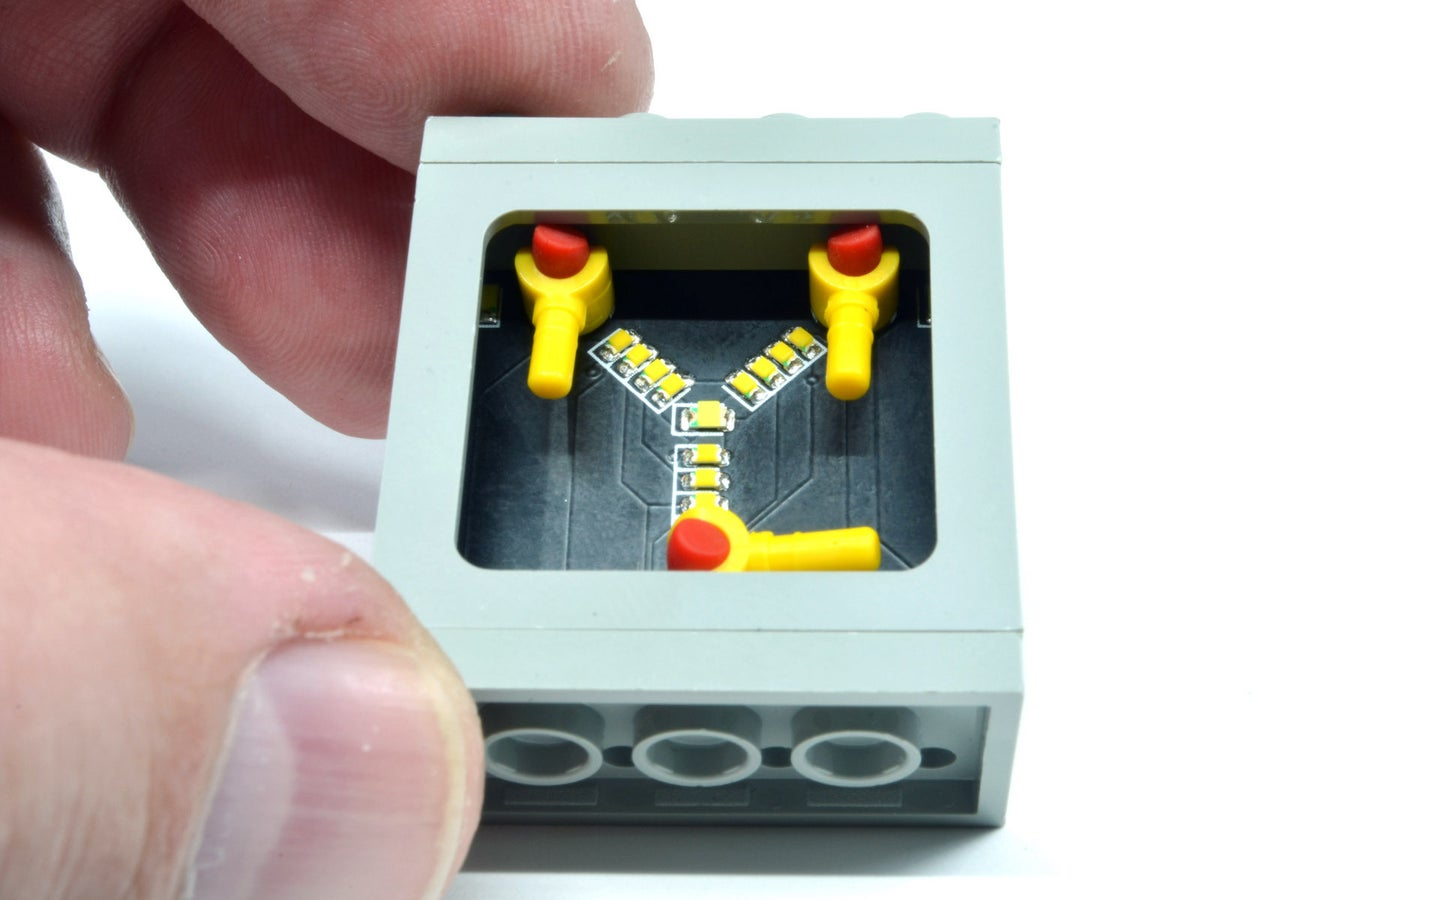 Flux capacitor toy